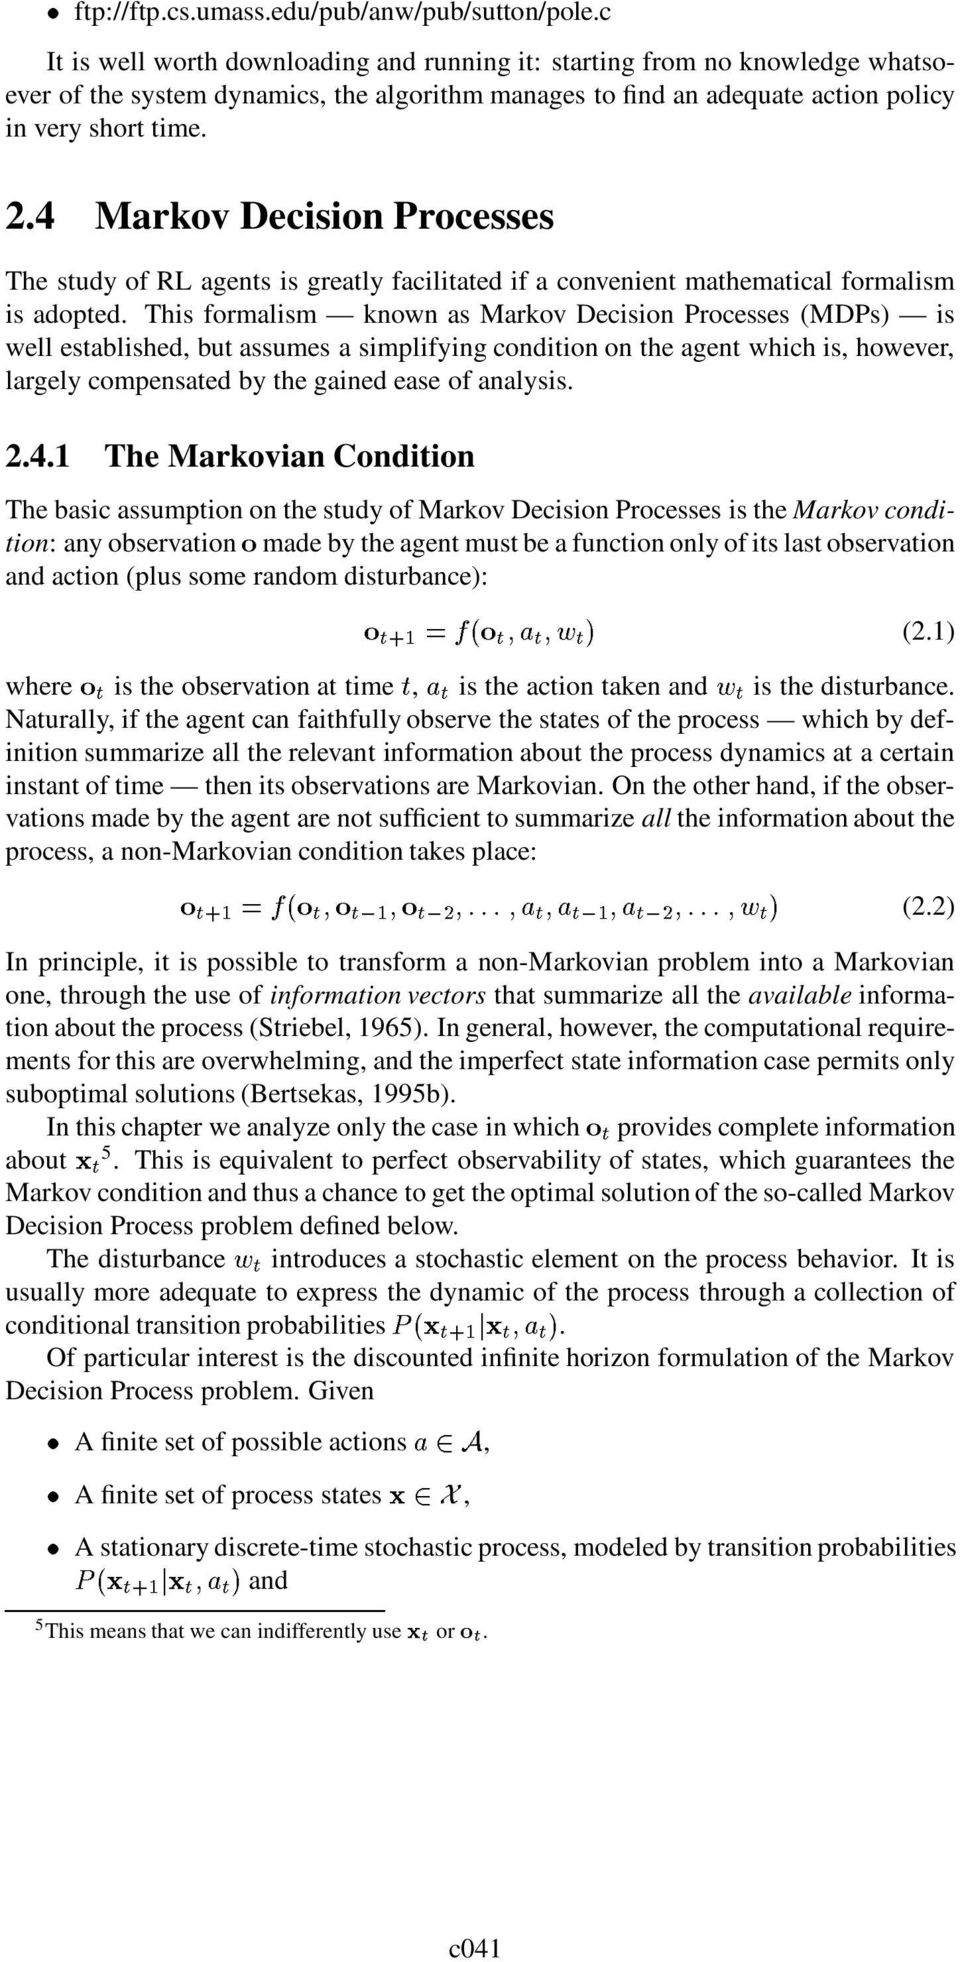 4 Markov Decision Processes The study of RL agents is greatly facilitated if a convenient mathematical formalism is adopted.